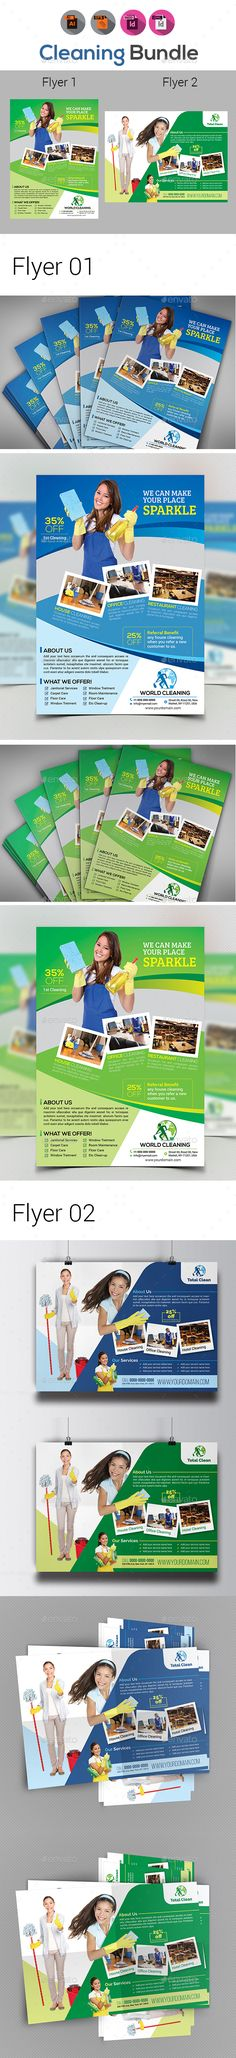 Cleaning Services Flyer Template Vol2 Cleaning service, Flyer - cleaning brochure template